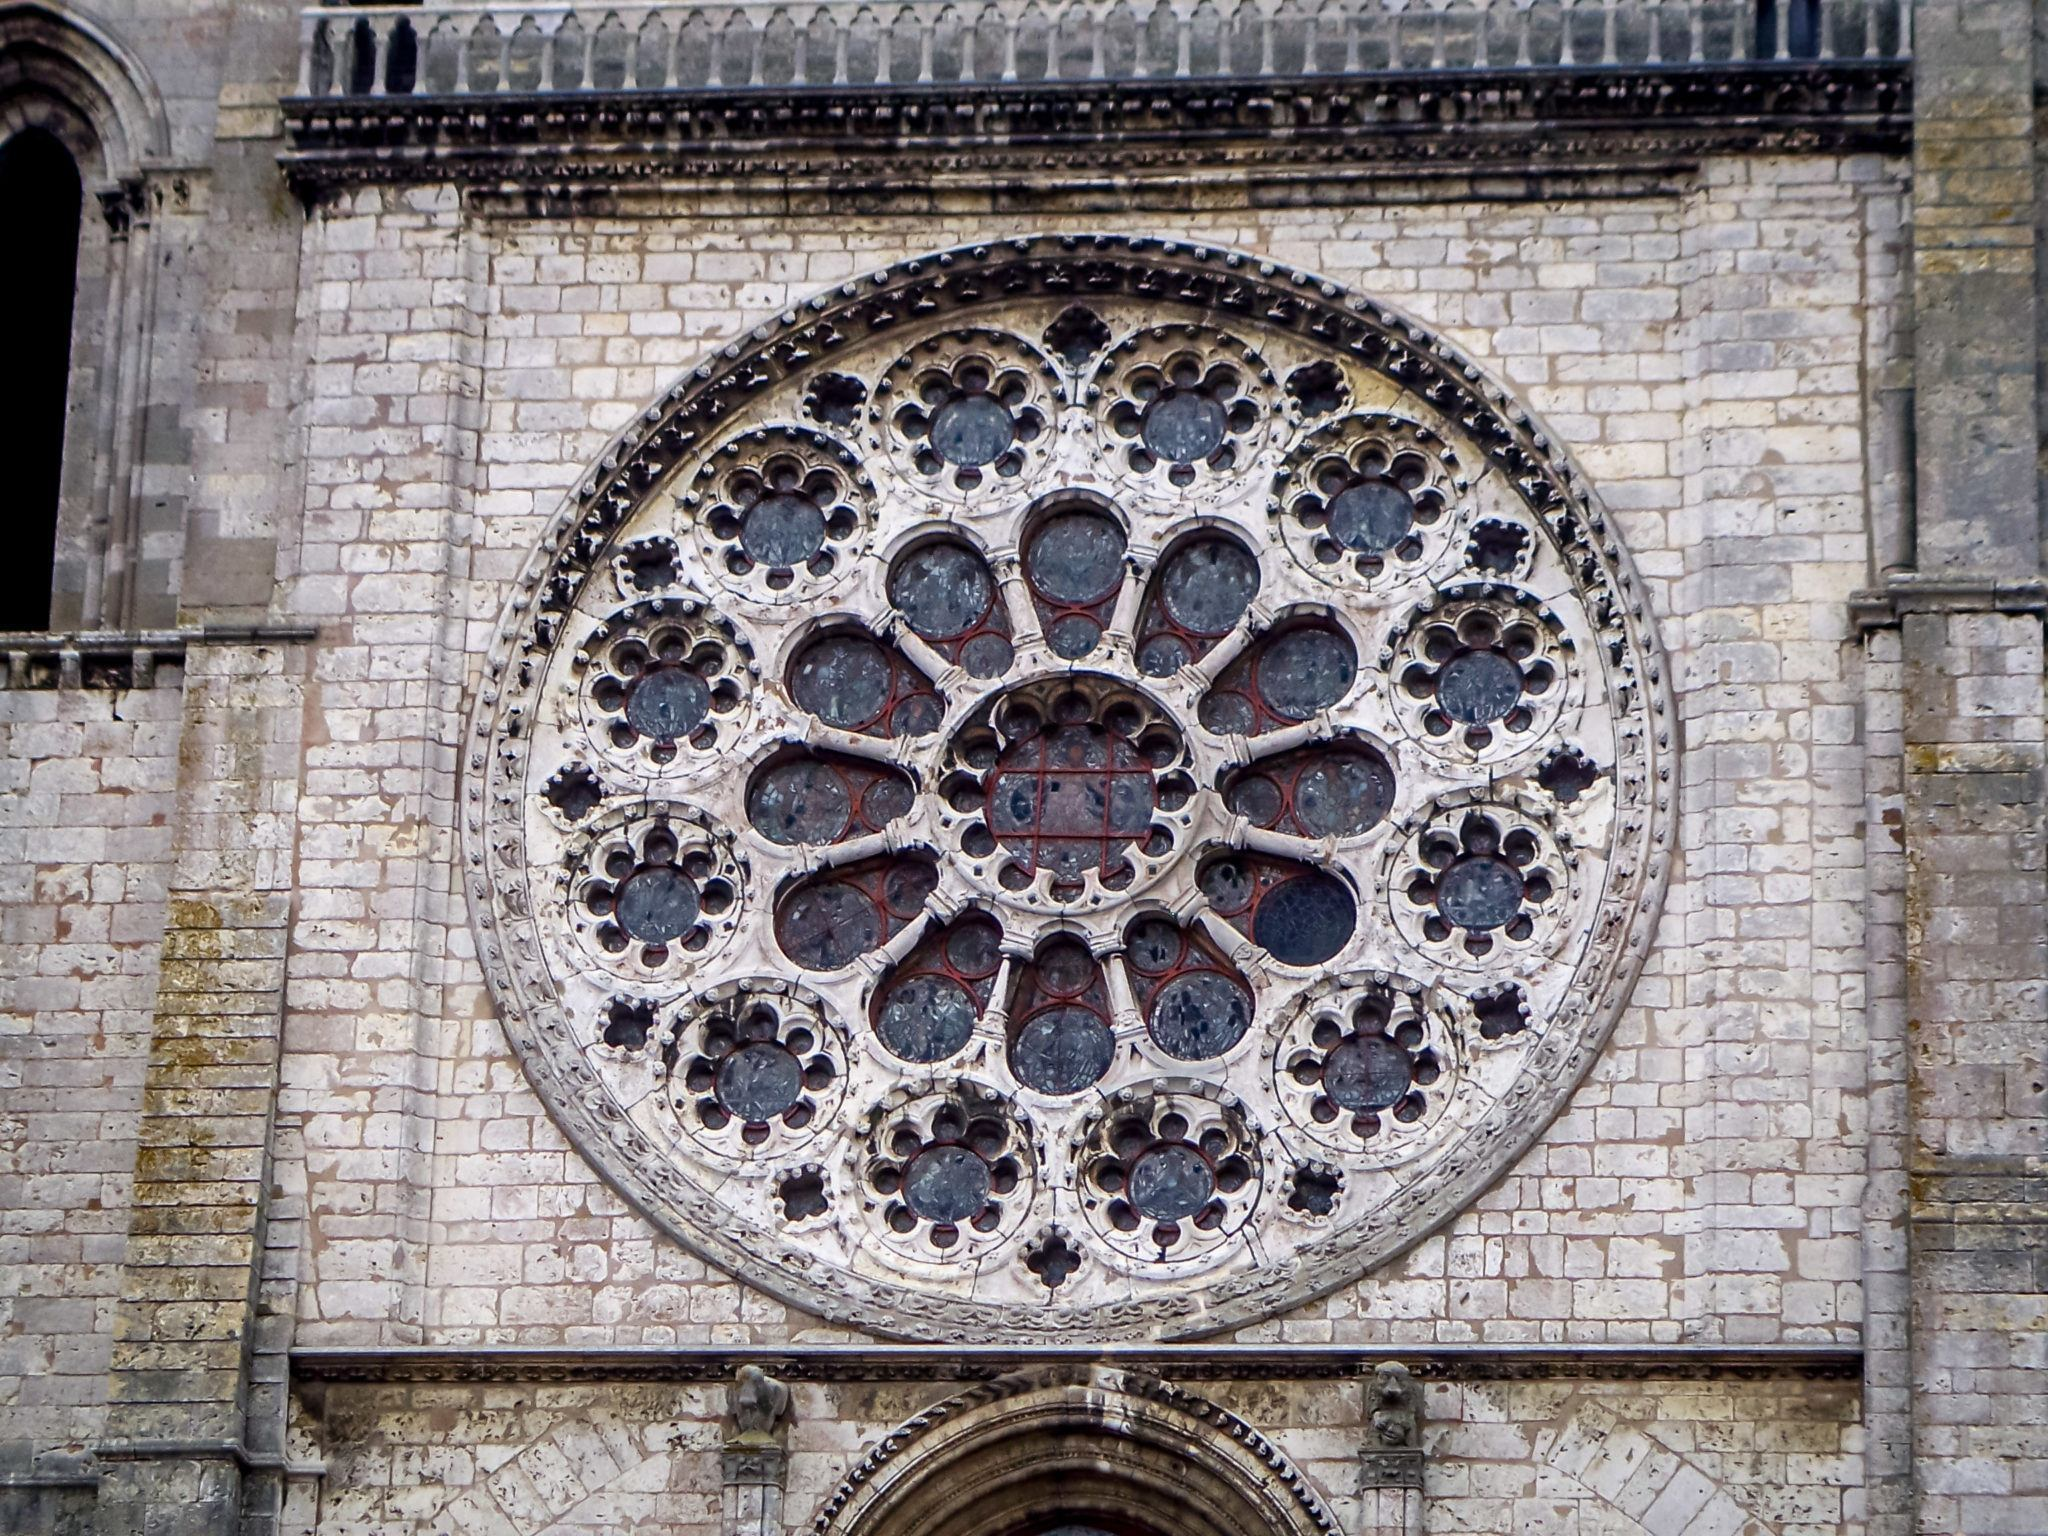 A stained glass window at Chartres Cathedral